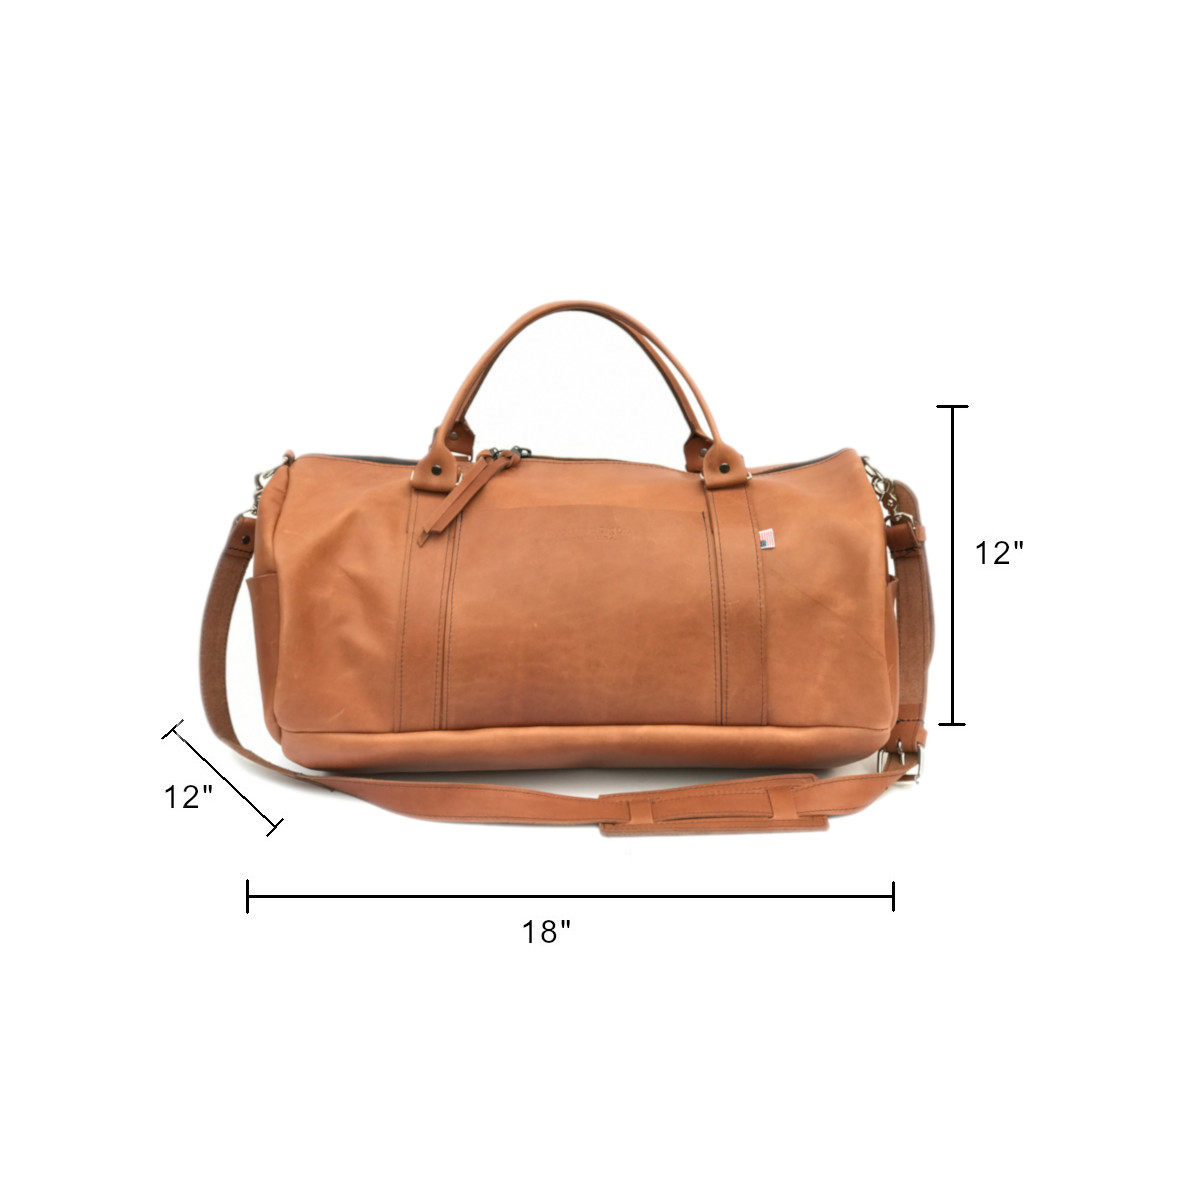 76574392aa0d vintage-tan-duffel-3716-google-disply-ad-logo-. Product Details  18